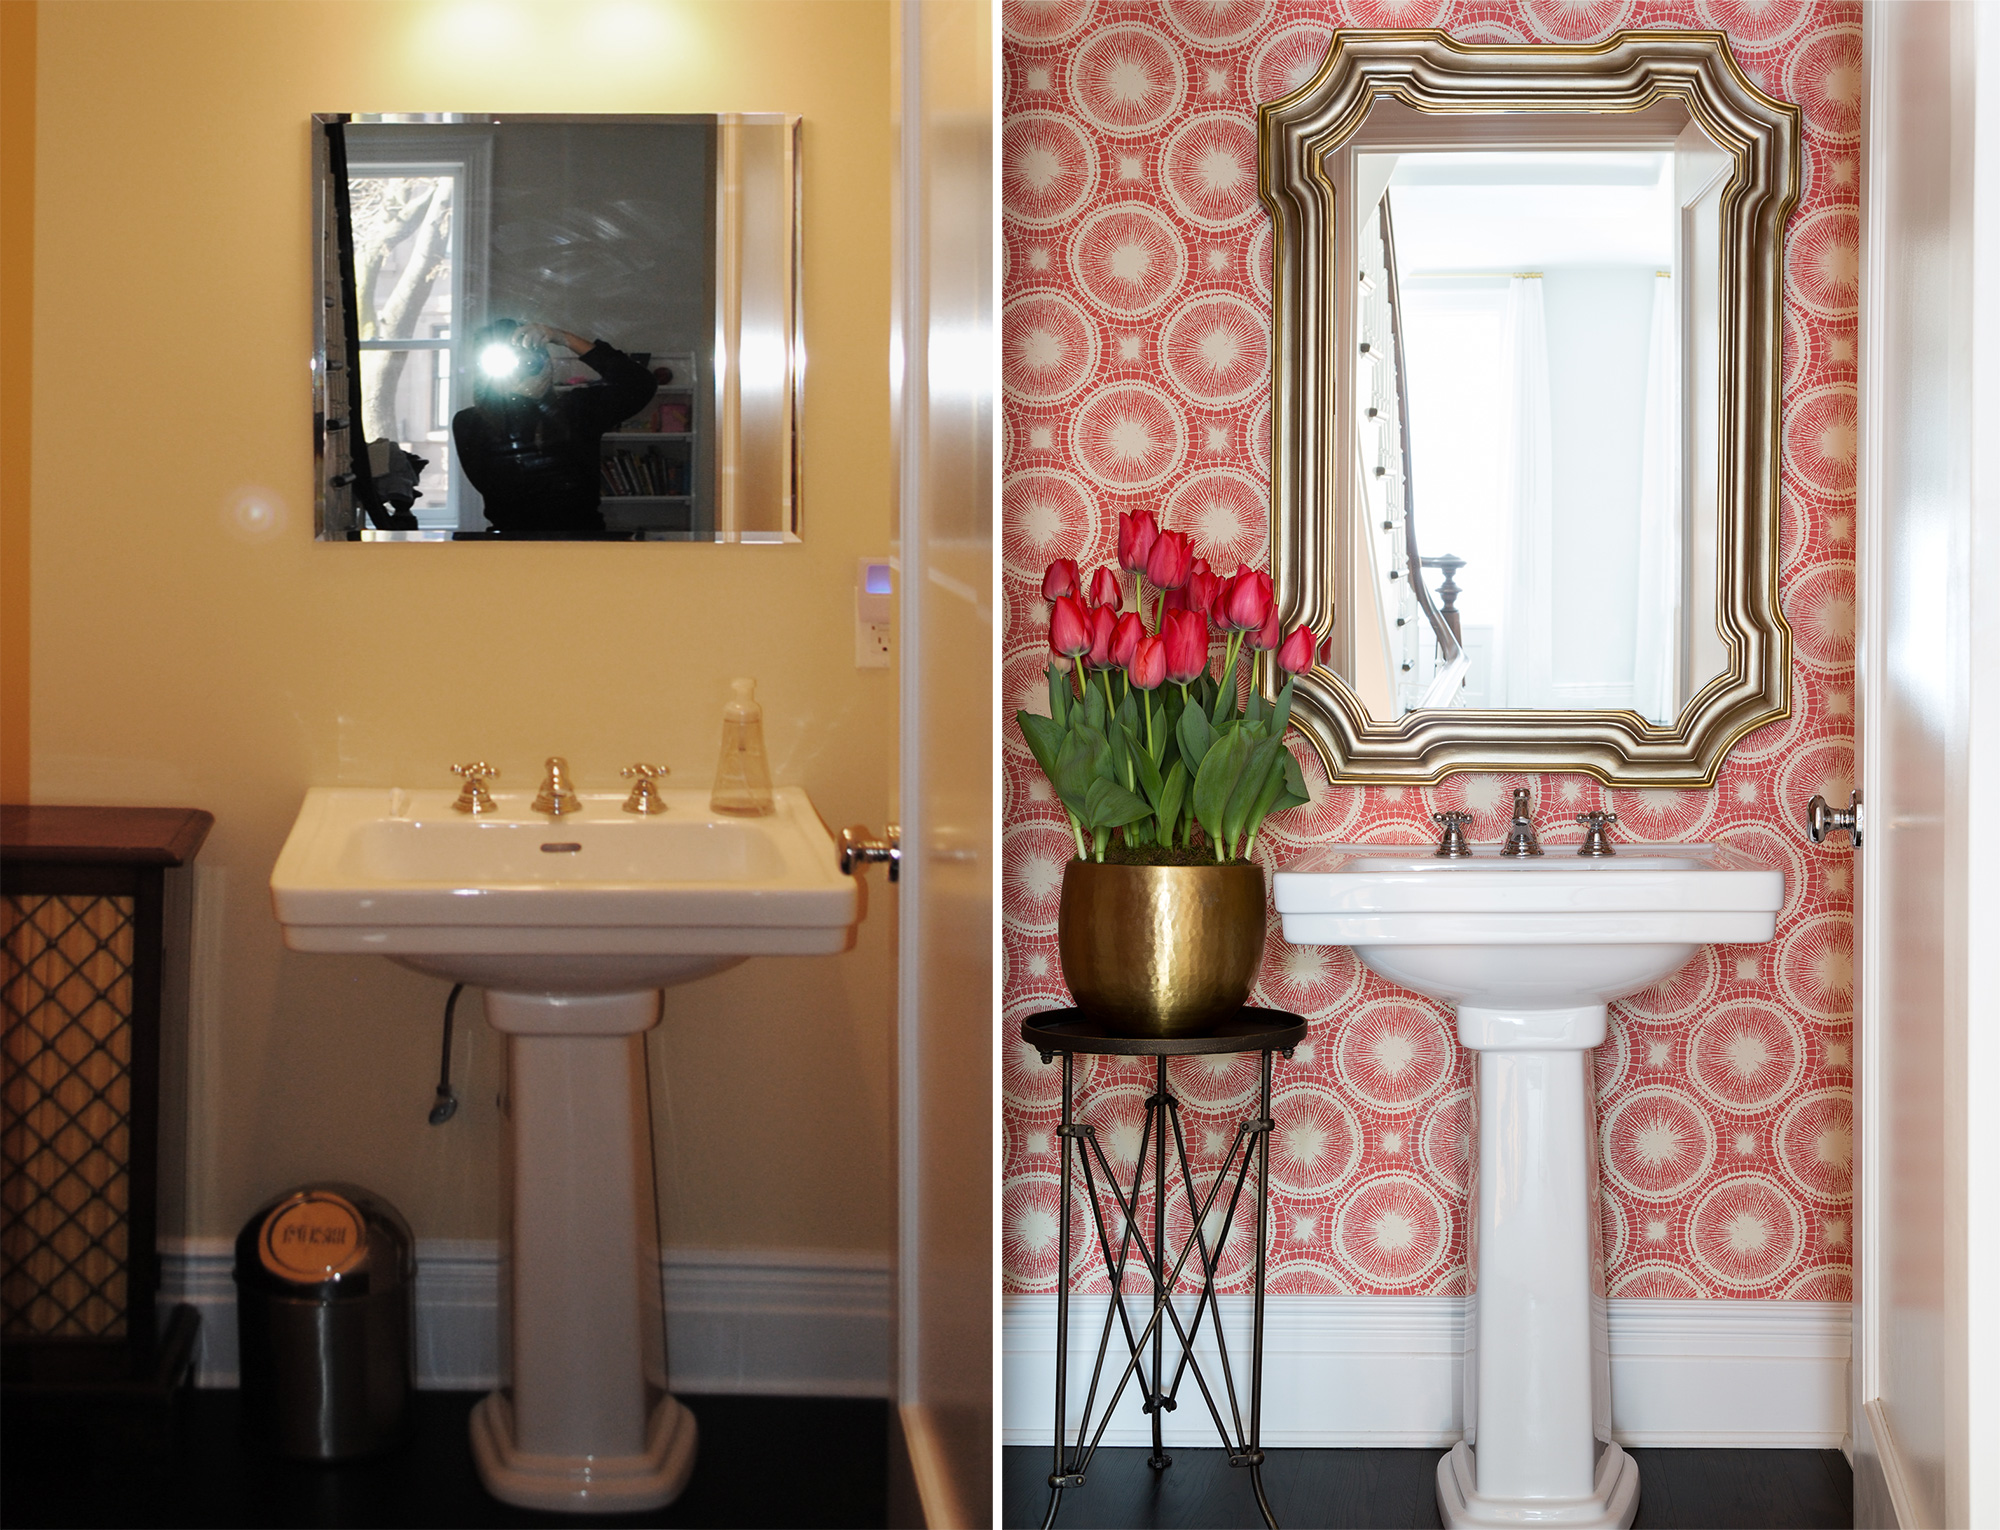 New wallpaper and mirror and your powder room is transformed.